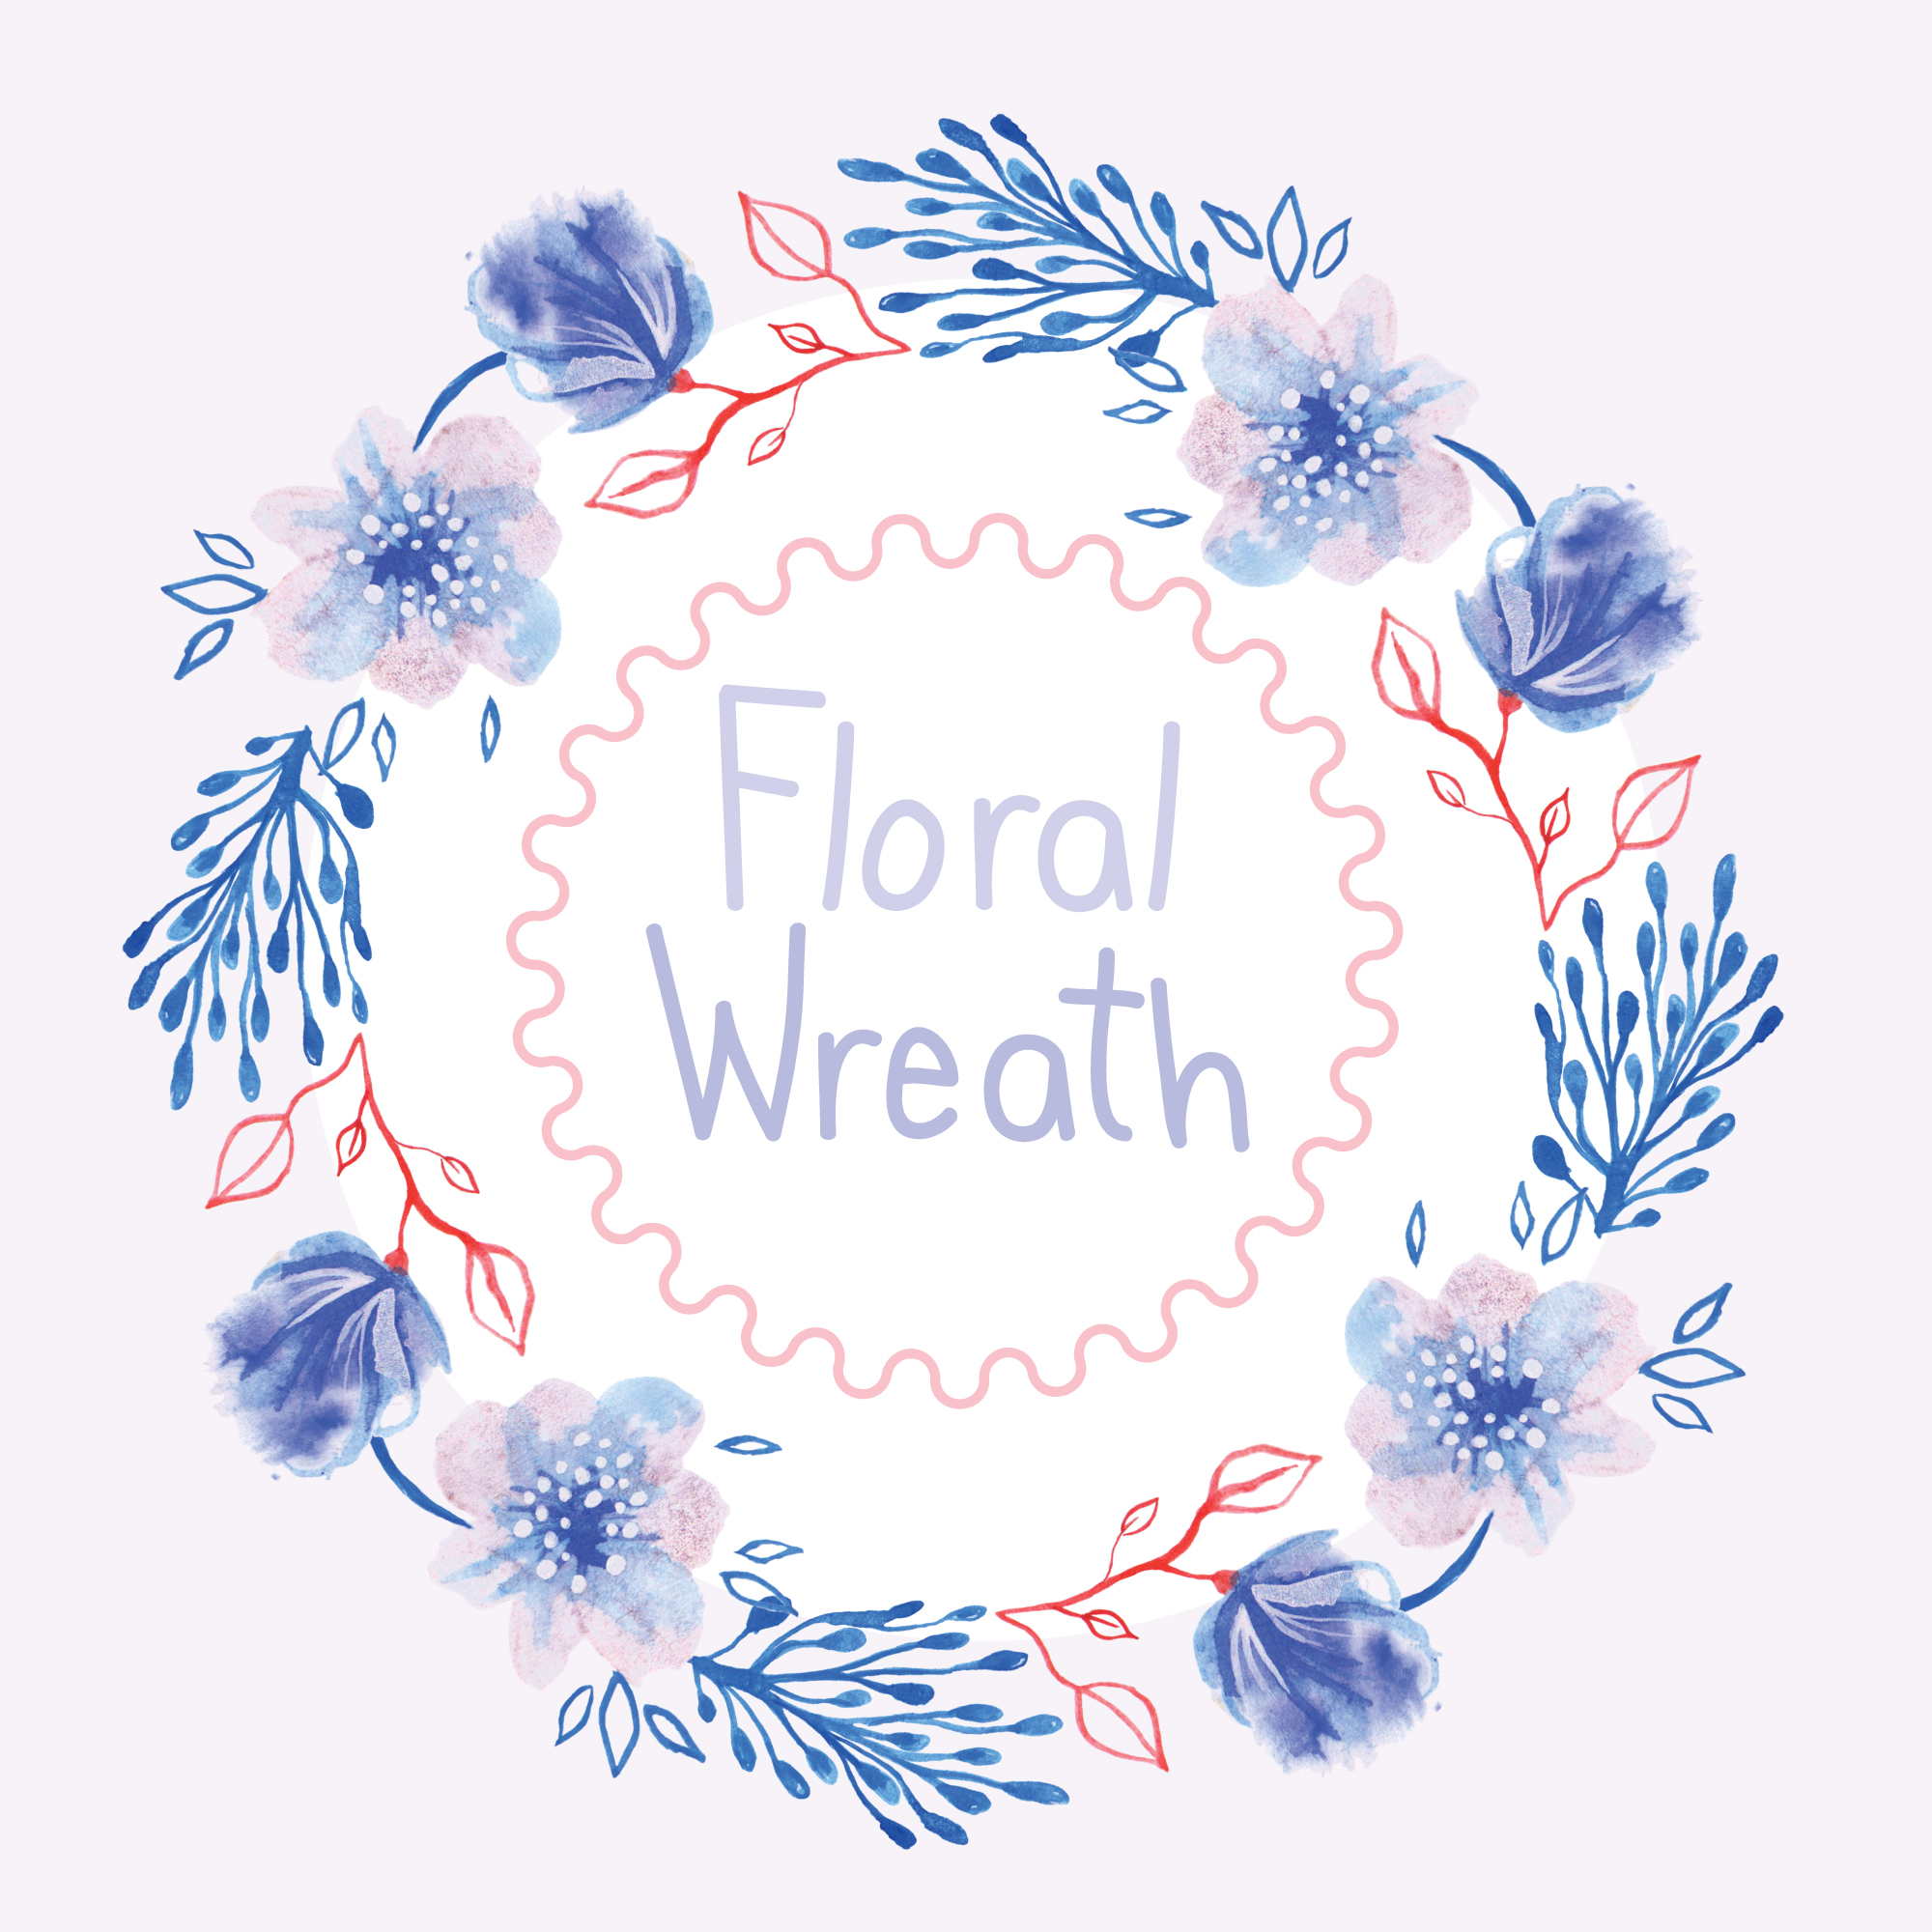 Floral wreath background design